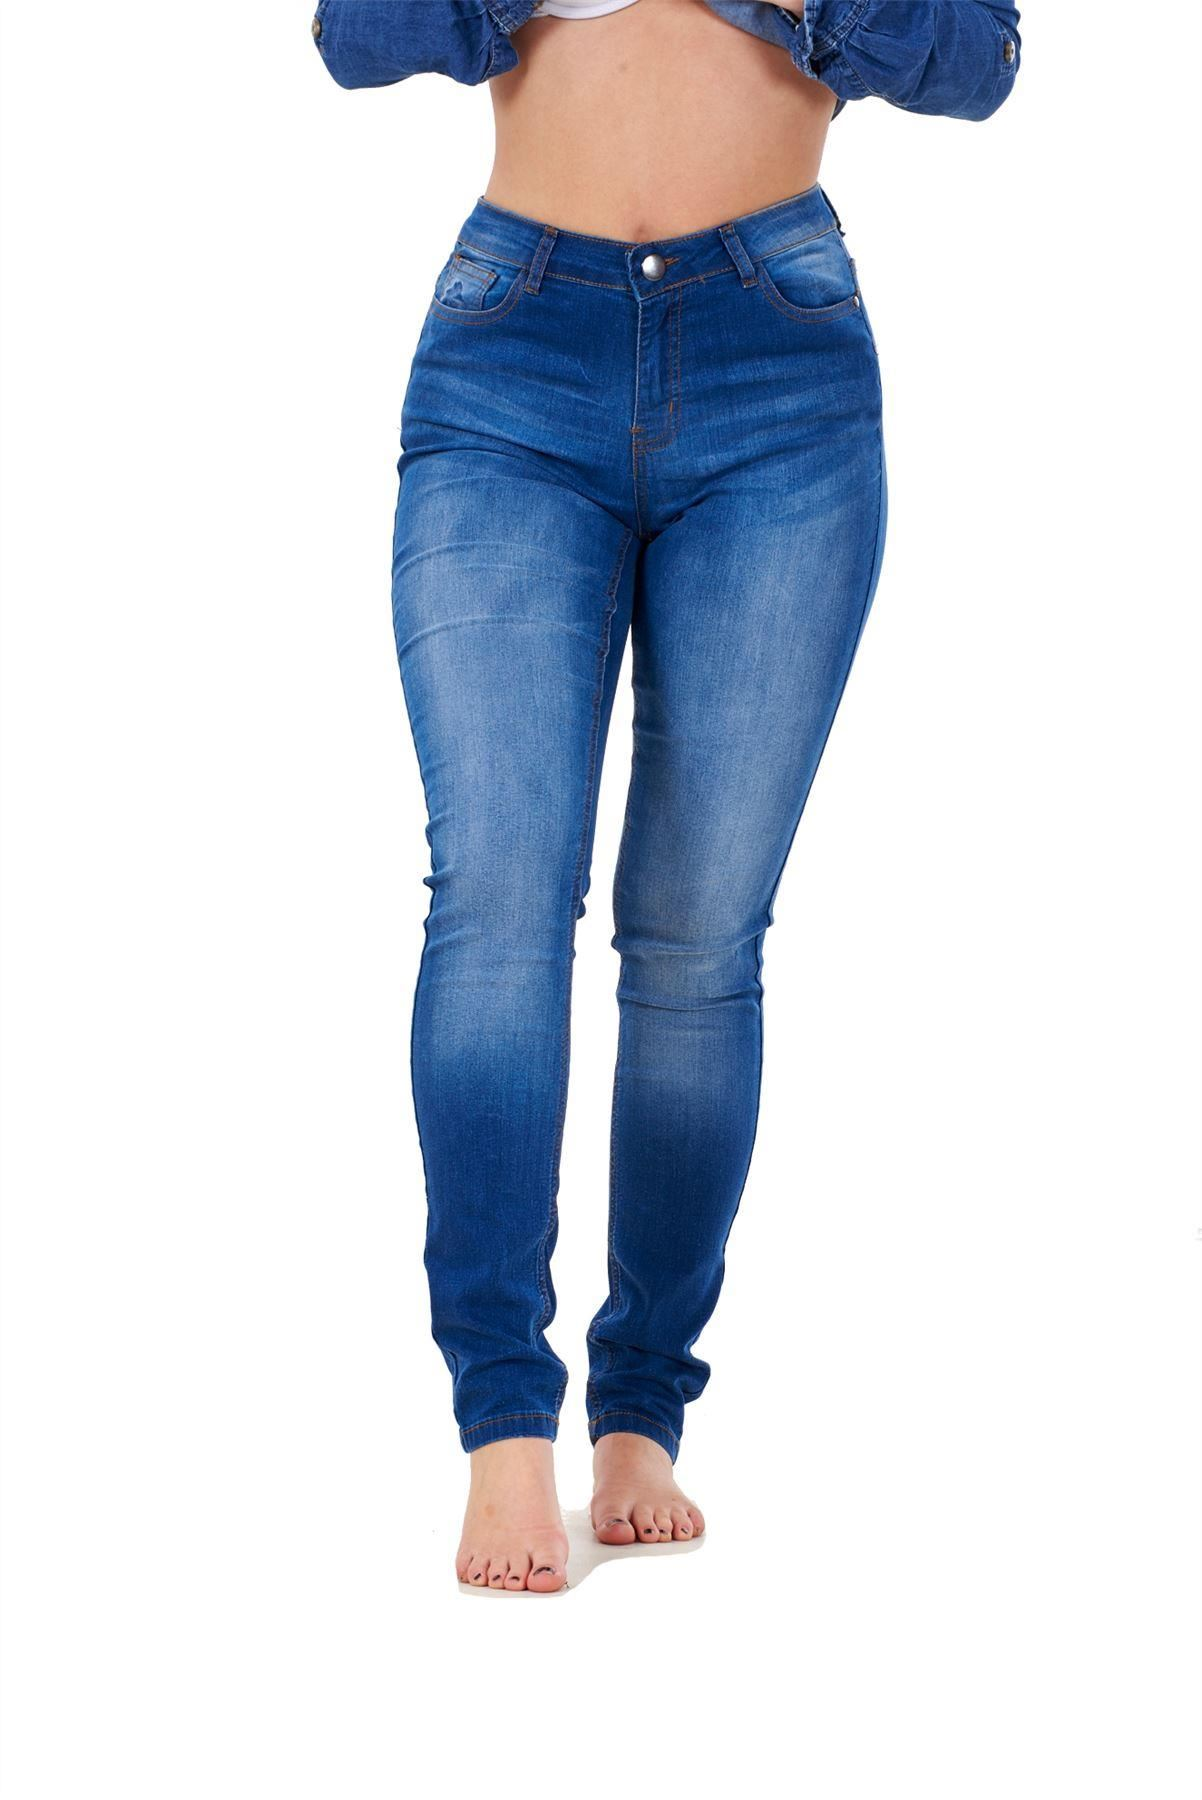 Ladies-Stretch-Jeans-Denim-cotton-Zip-fly-High-Waisted-Slim-Fit-Trousers-Pants thumbnail 7